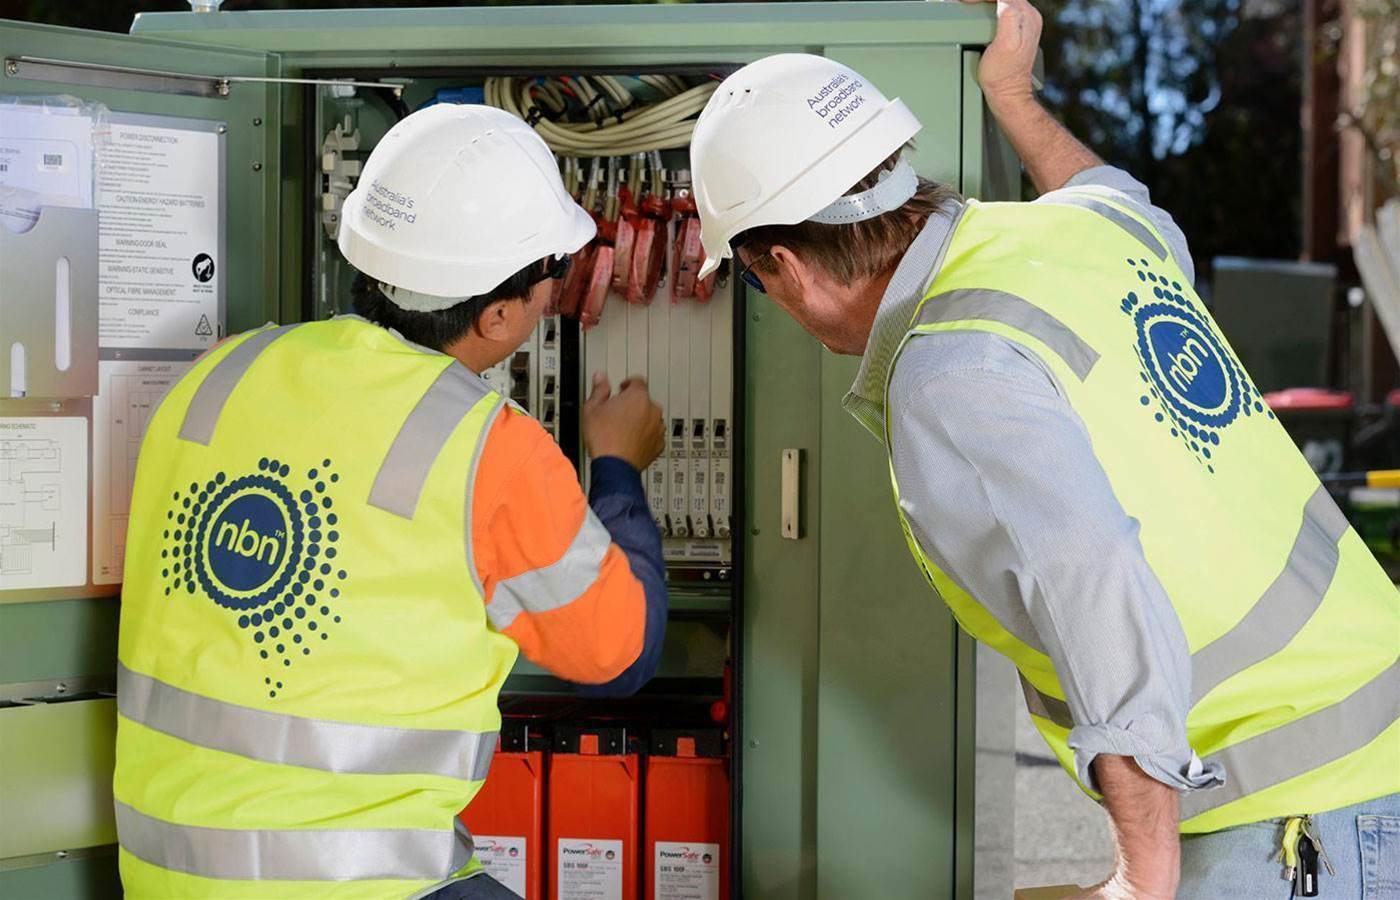 NBN resellers improving bandwidth after temporary CVC pricing offer - ACCC report